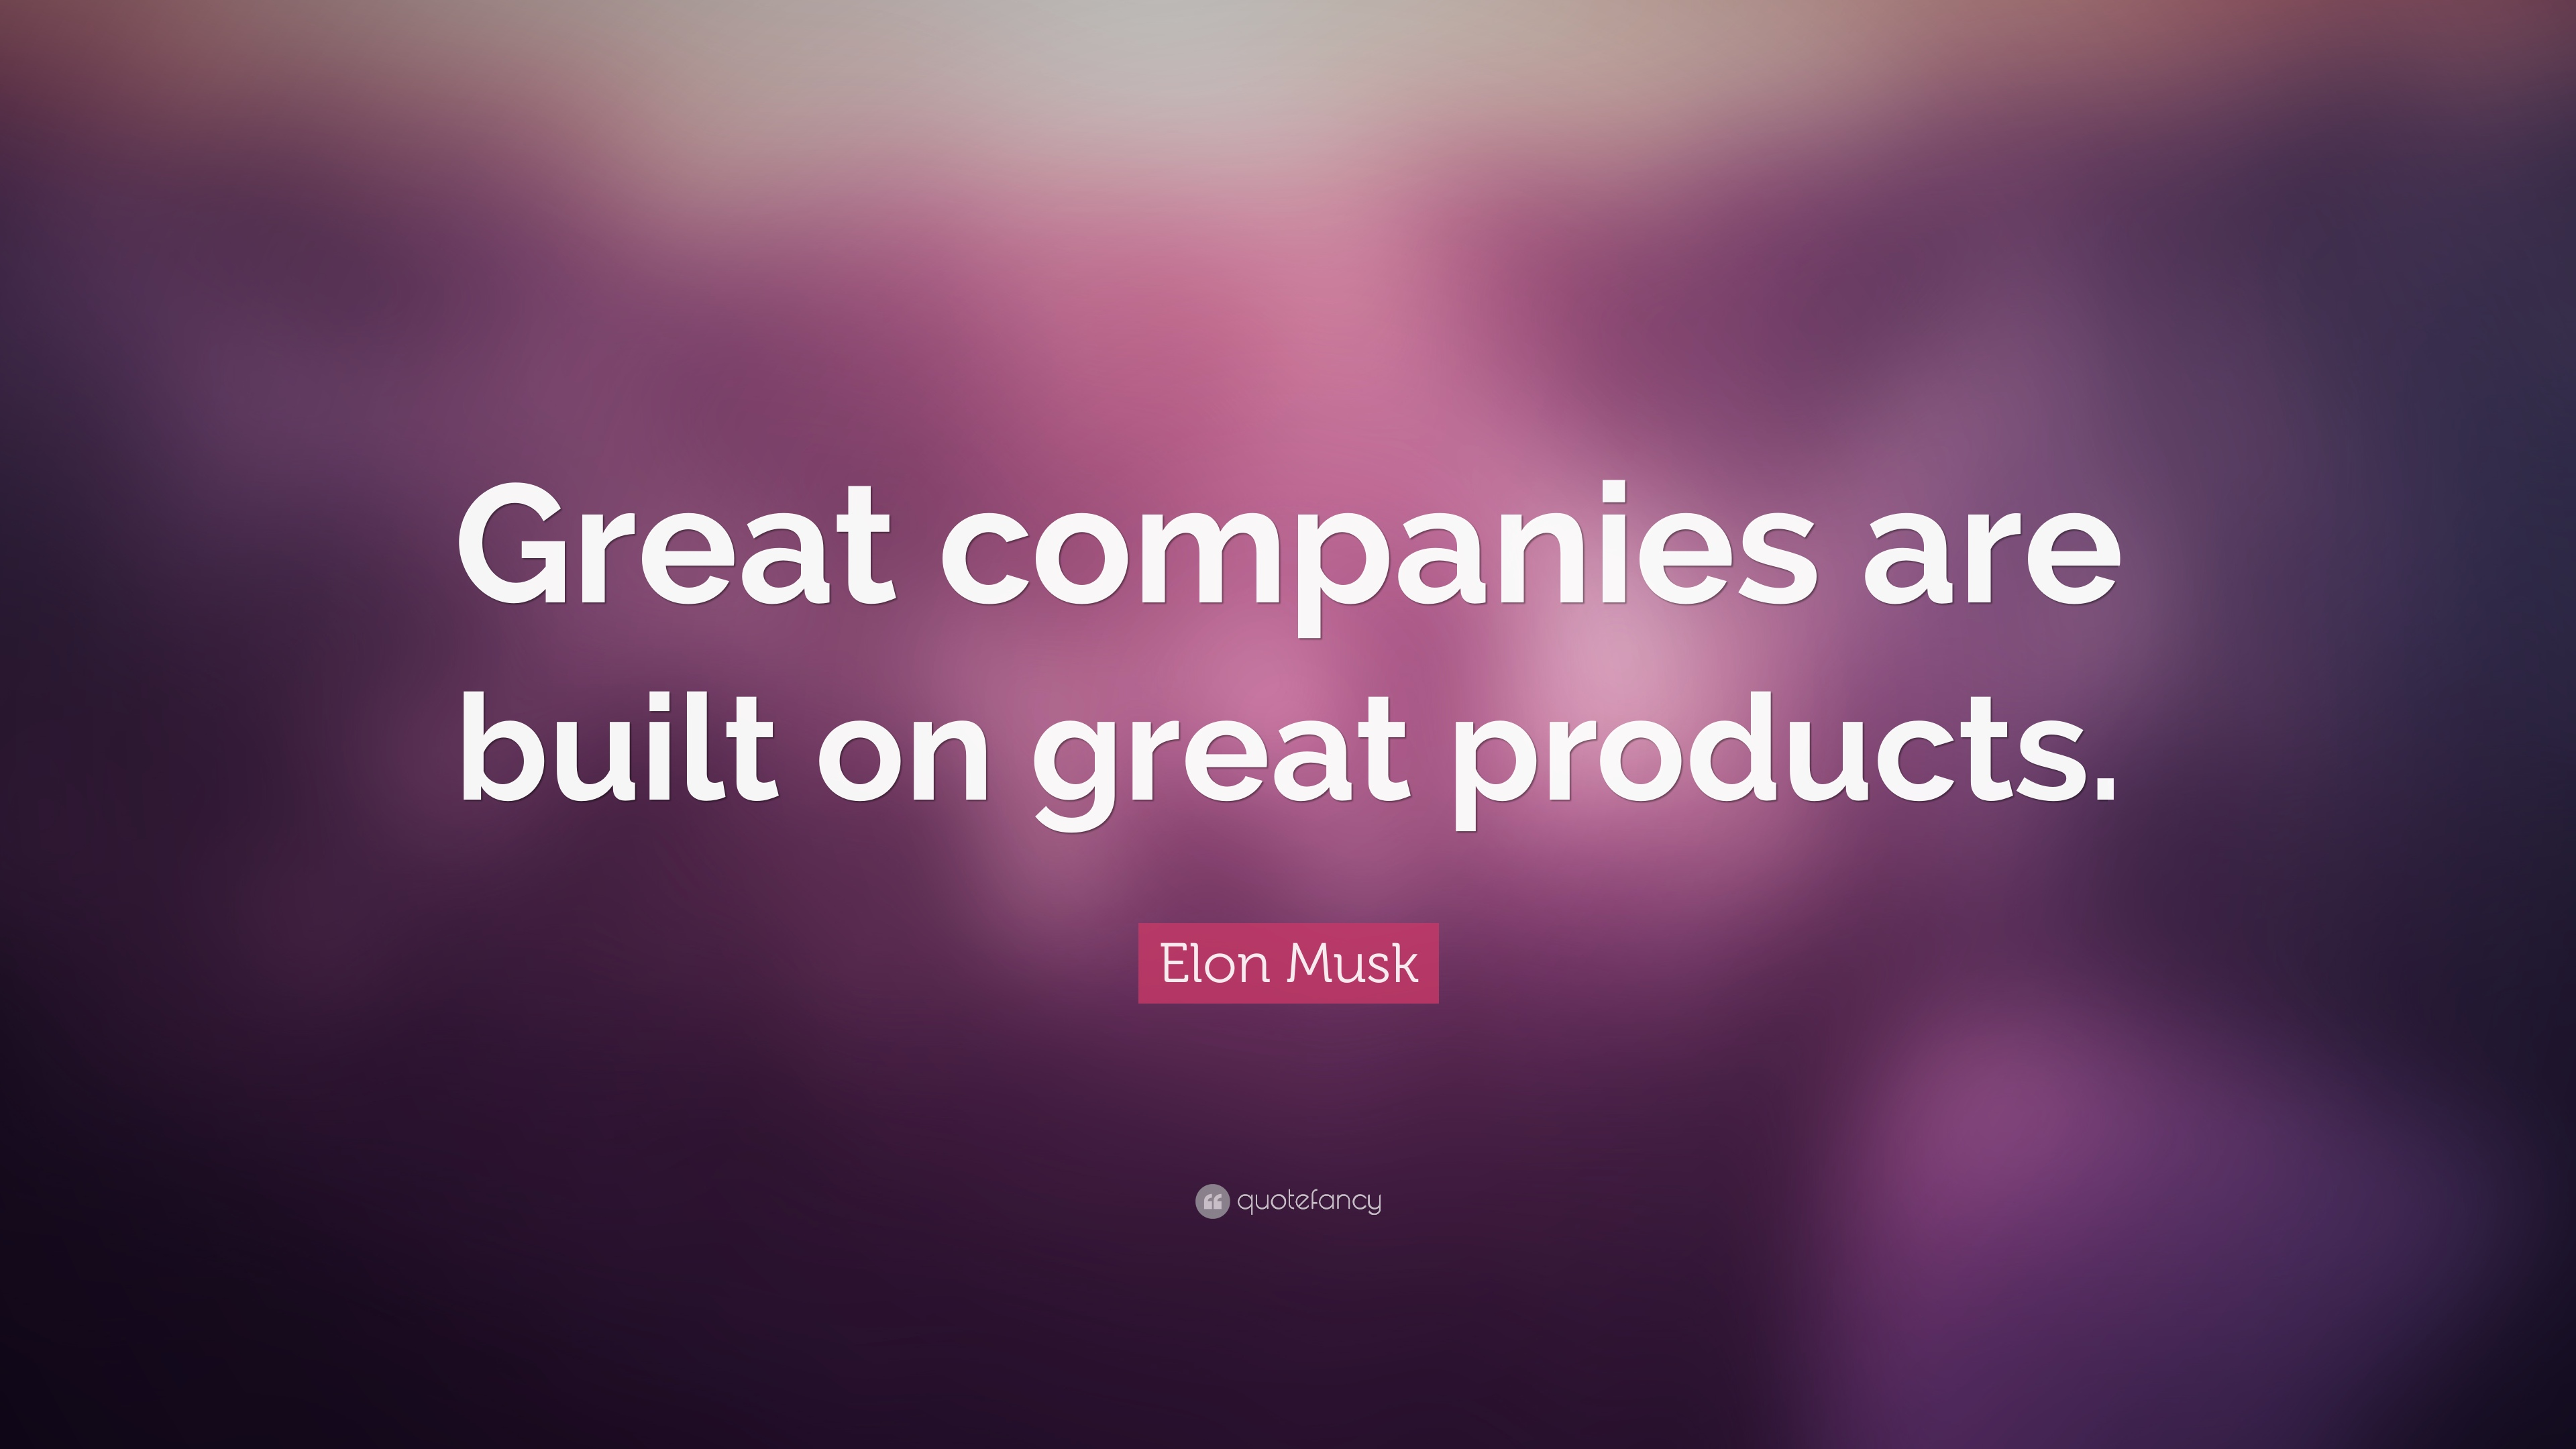 Persistence Quotes Wallpapers Elon Musk Quote Great Companies Are Built On Great